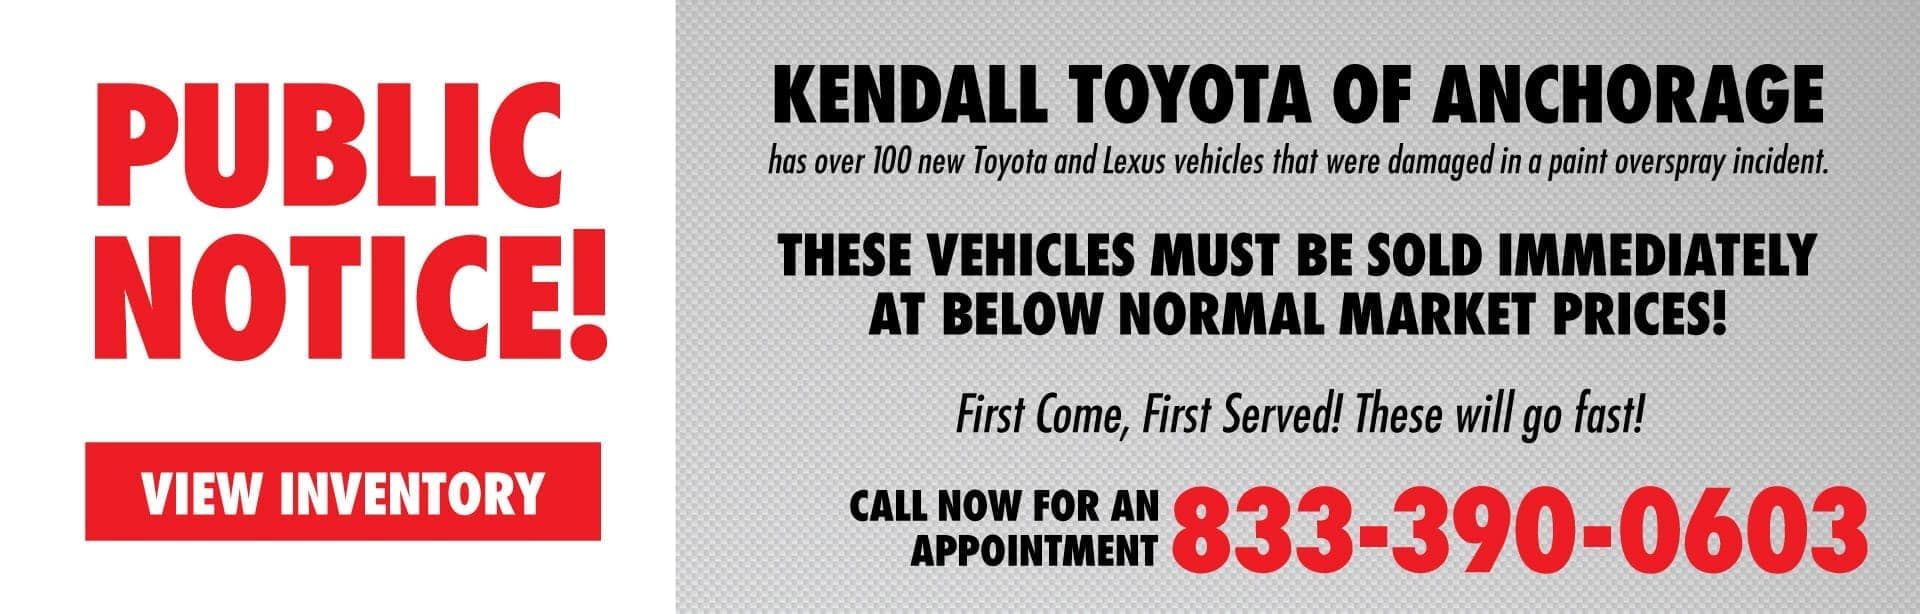 Kendall Auto Group Overspray Vehicles Sale